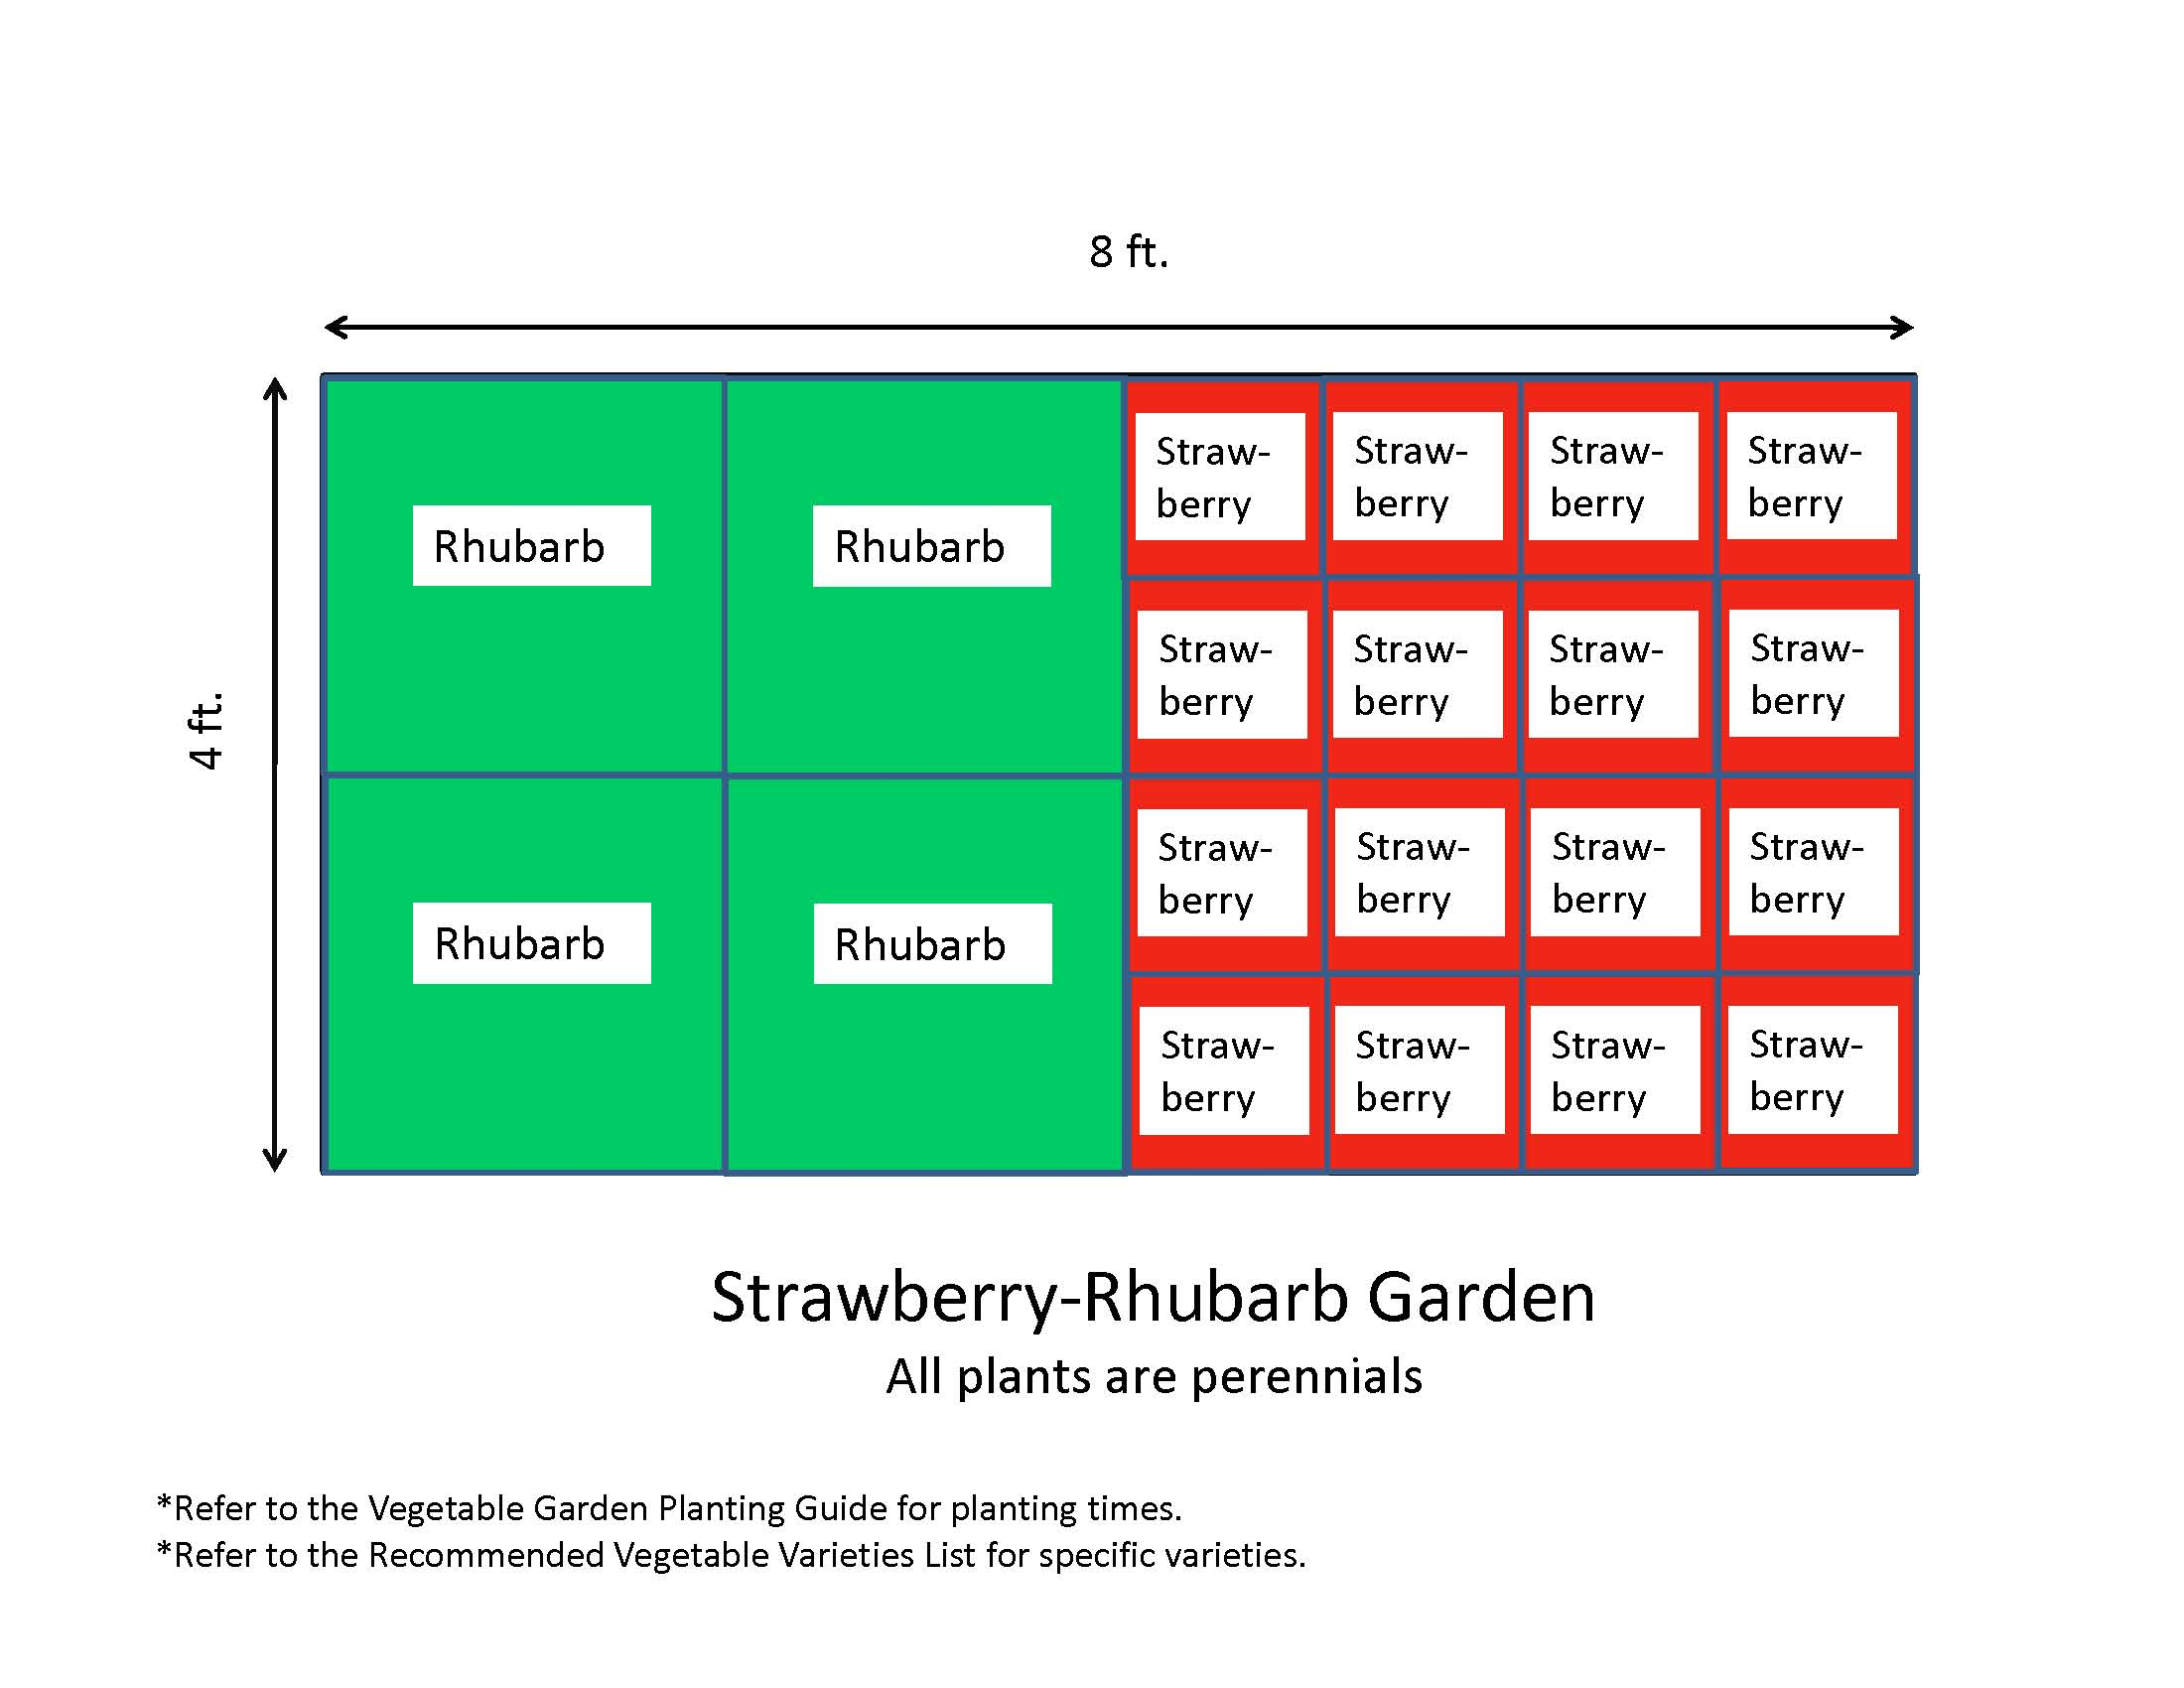 Raised vegetable garden layout 4x8 - If